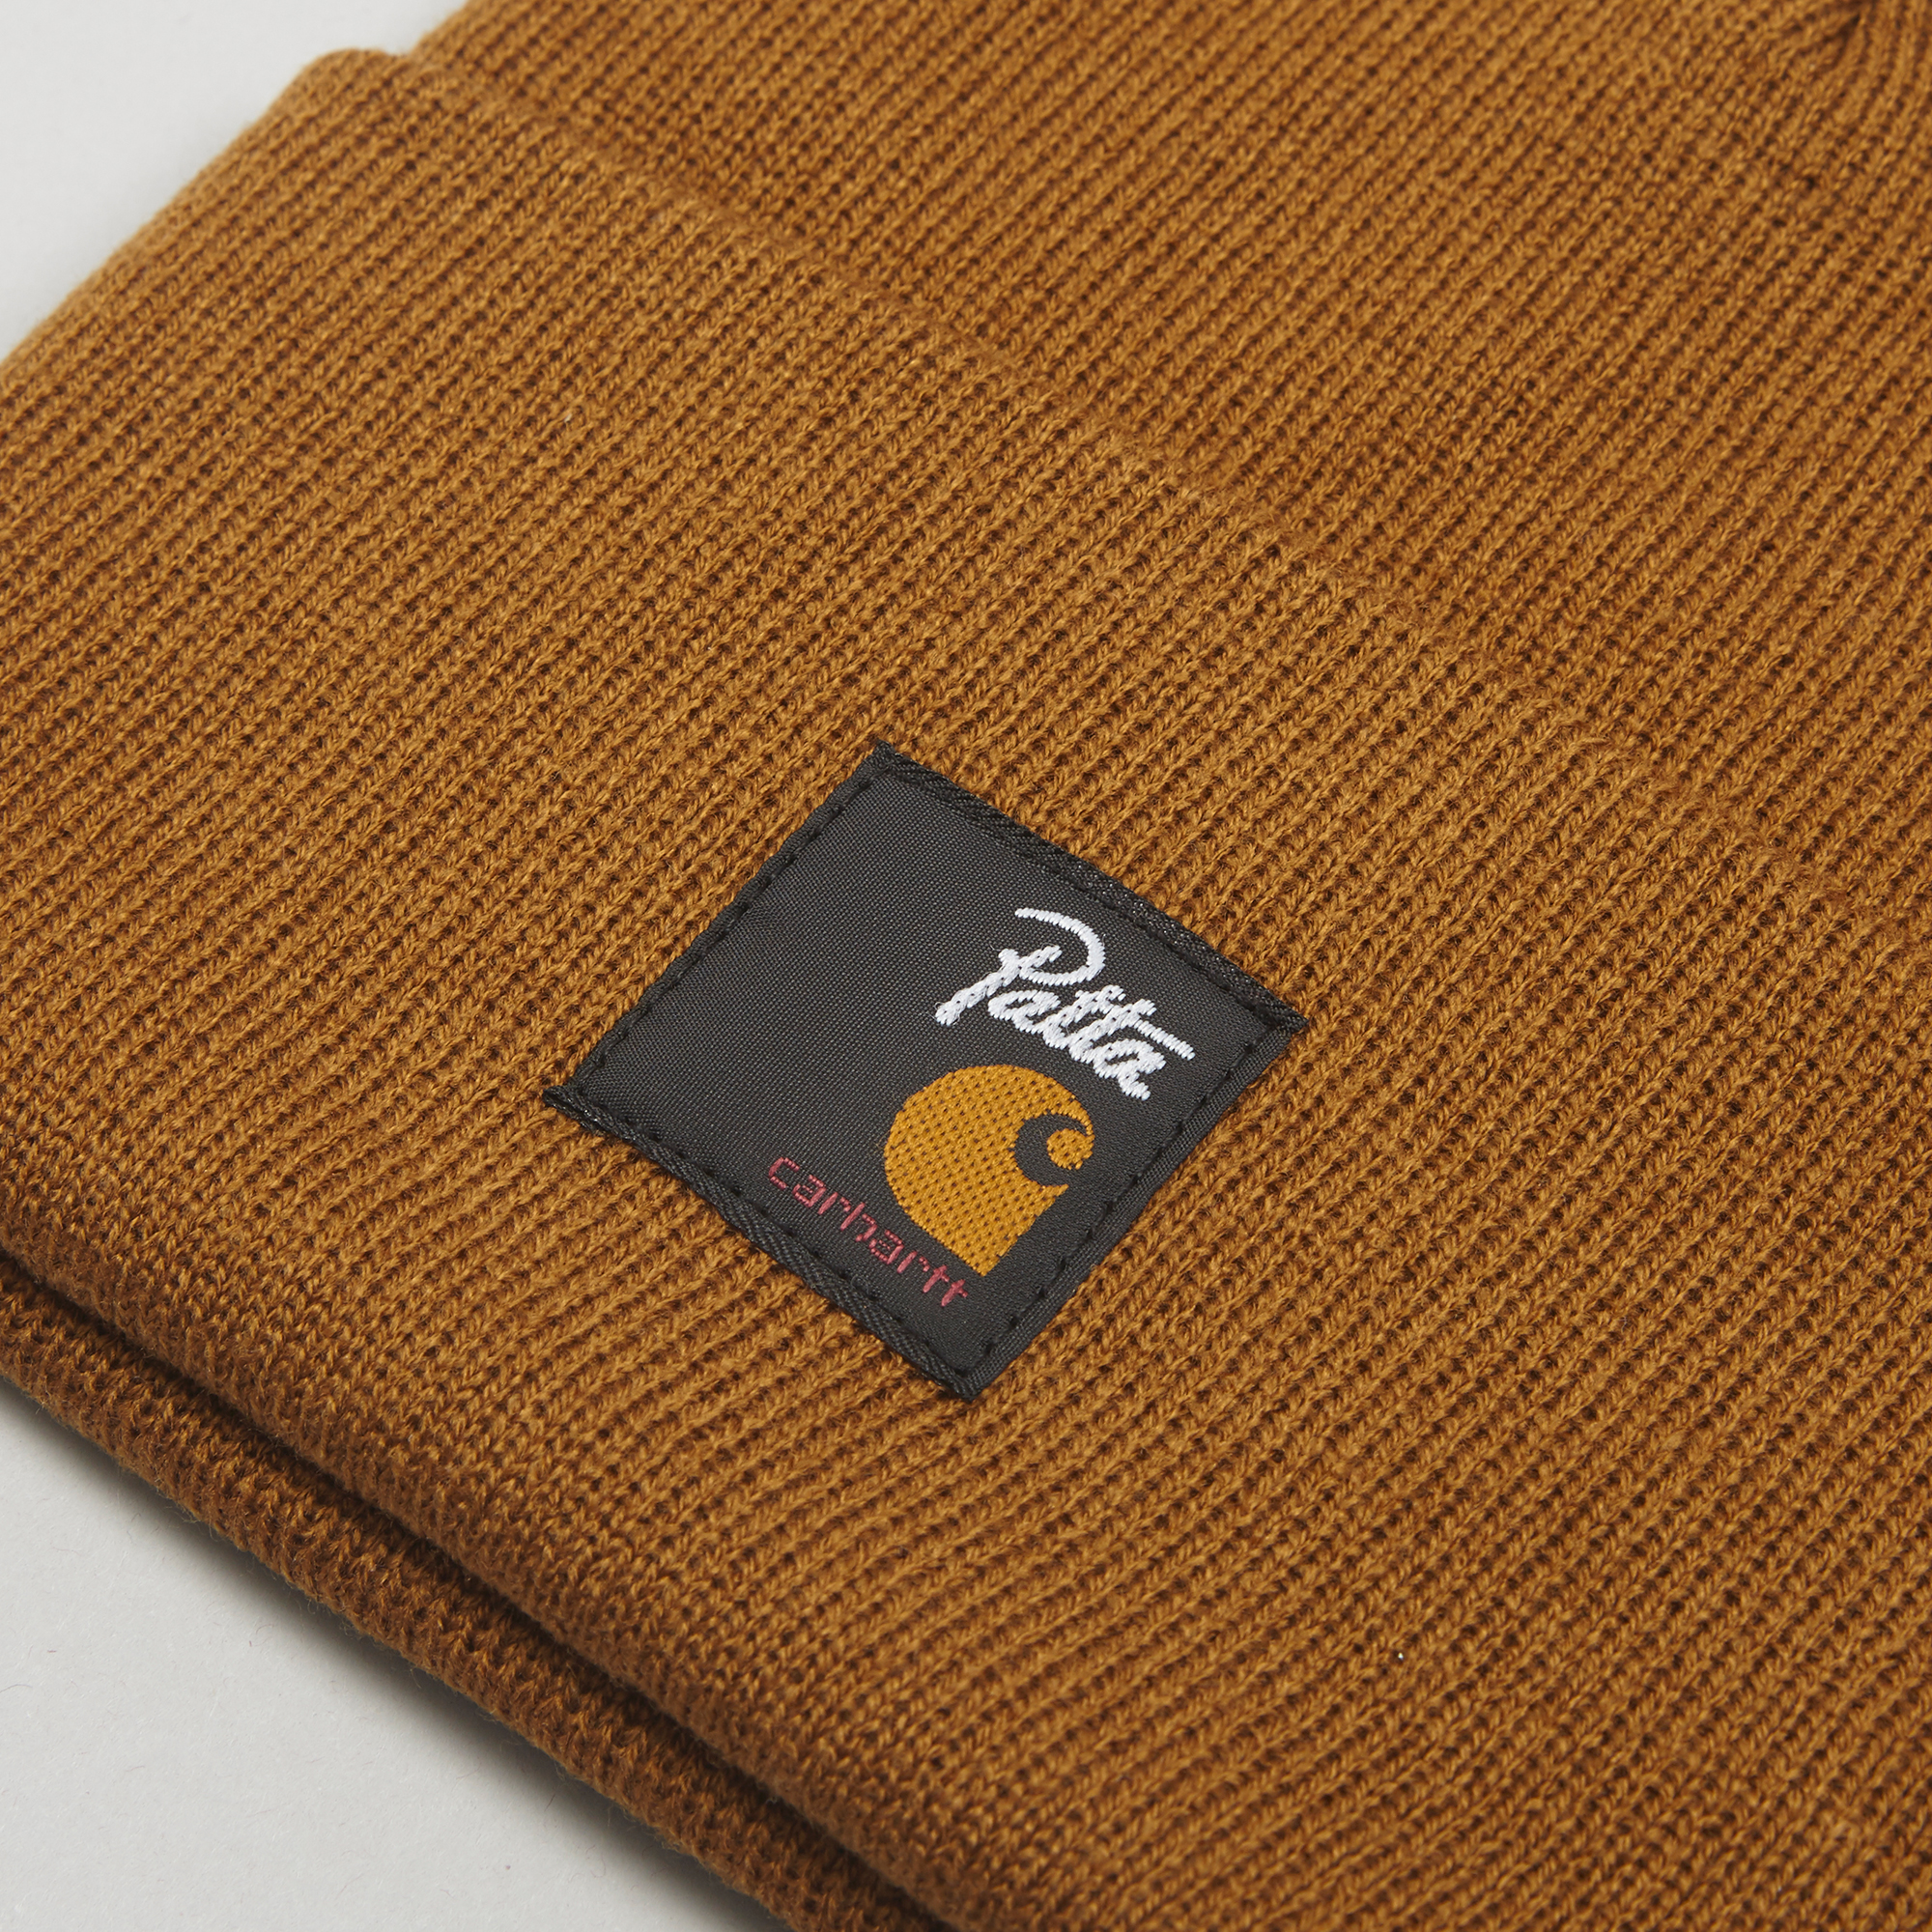 f15c7ba92b Carhartt WIP x Patta Watch Hat - Hamilton Brown